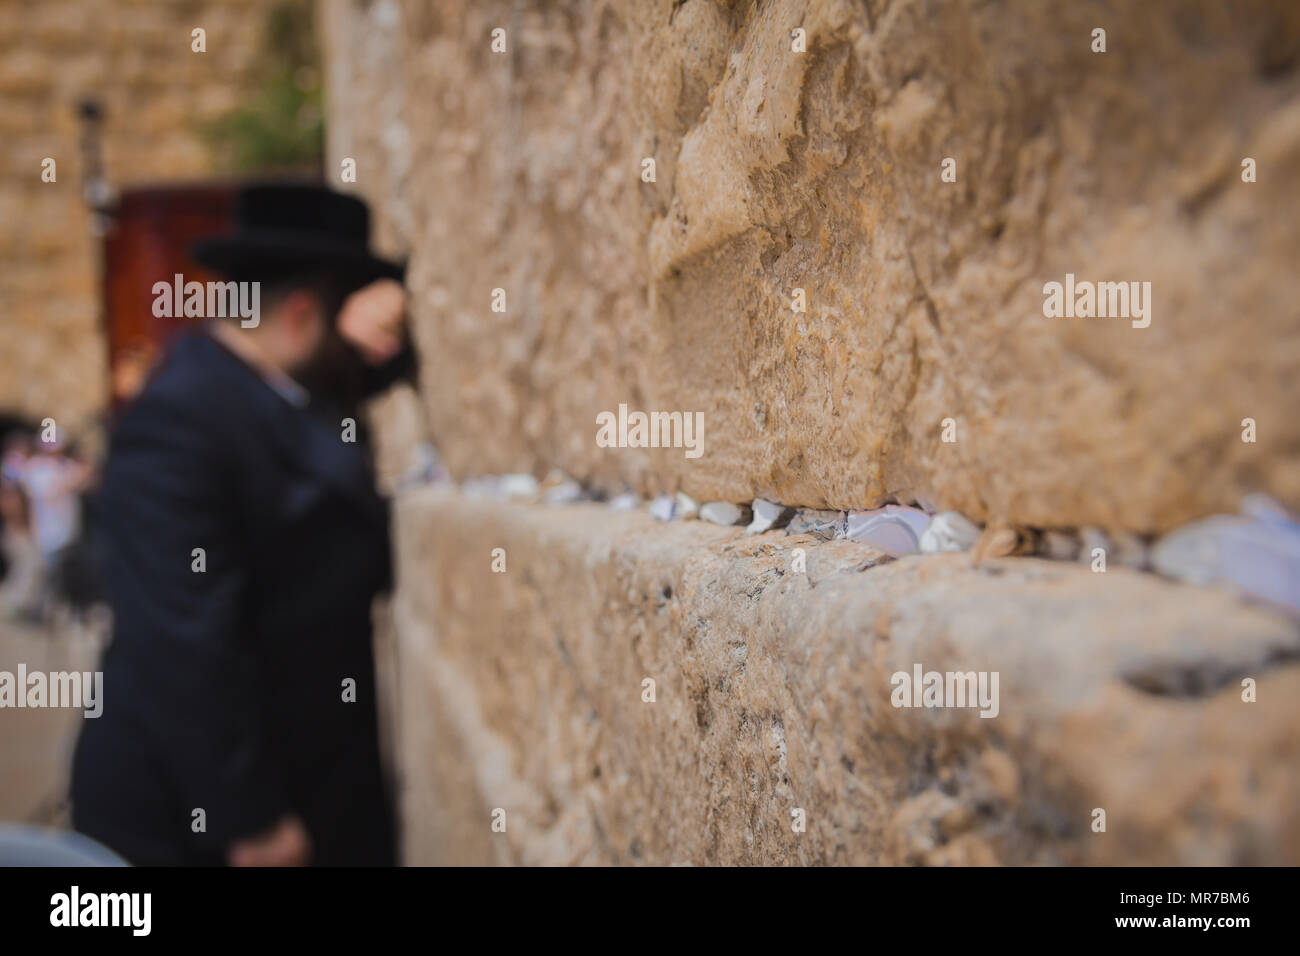 Religious orthodox jew praying at the Western Wall in the old city of Jerusalem Israel. There are notes to God in the cracks between the bricks. - Stock Image